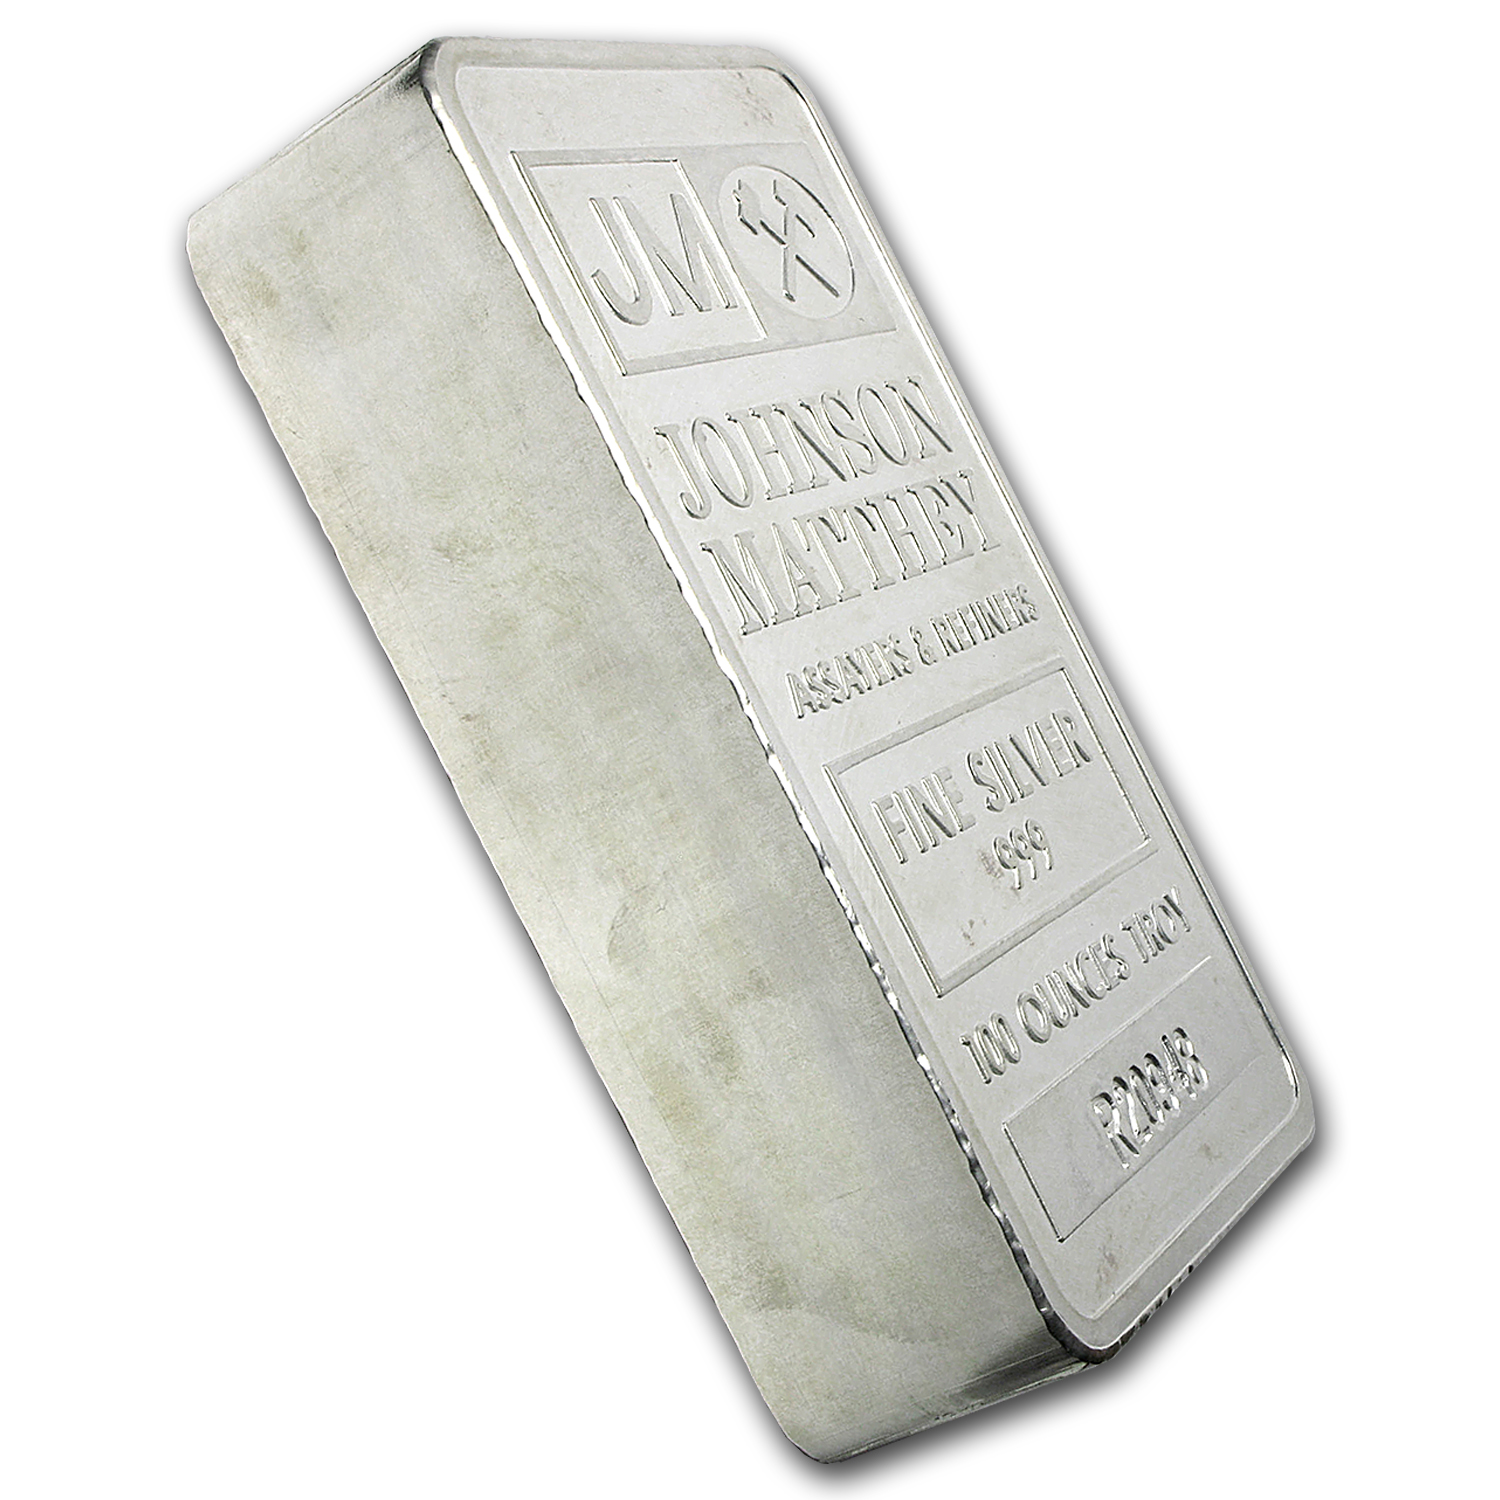 100 oz Silver Bar - Johnson Matthey (Pressed, w/Box & Serial #'s)